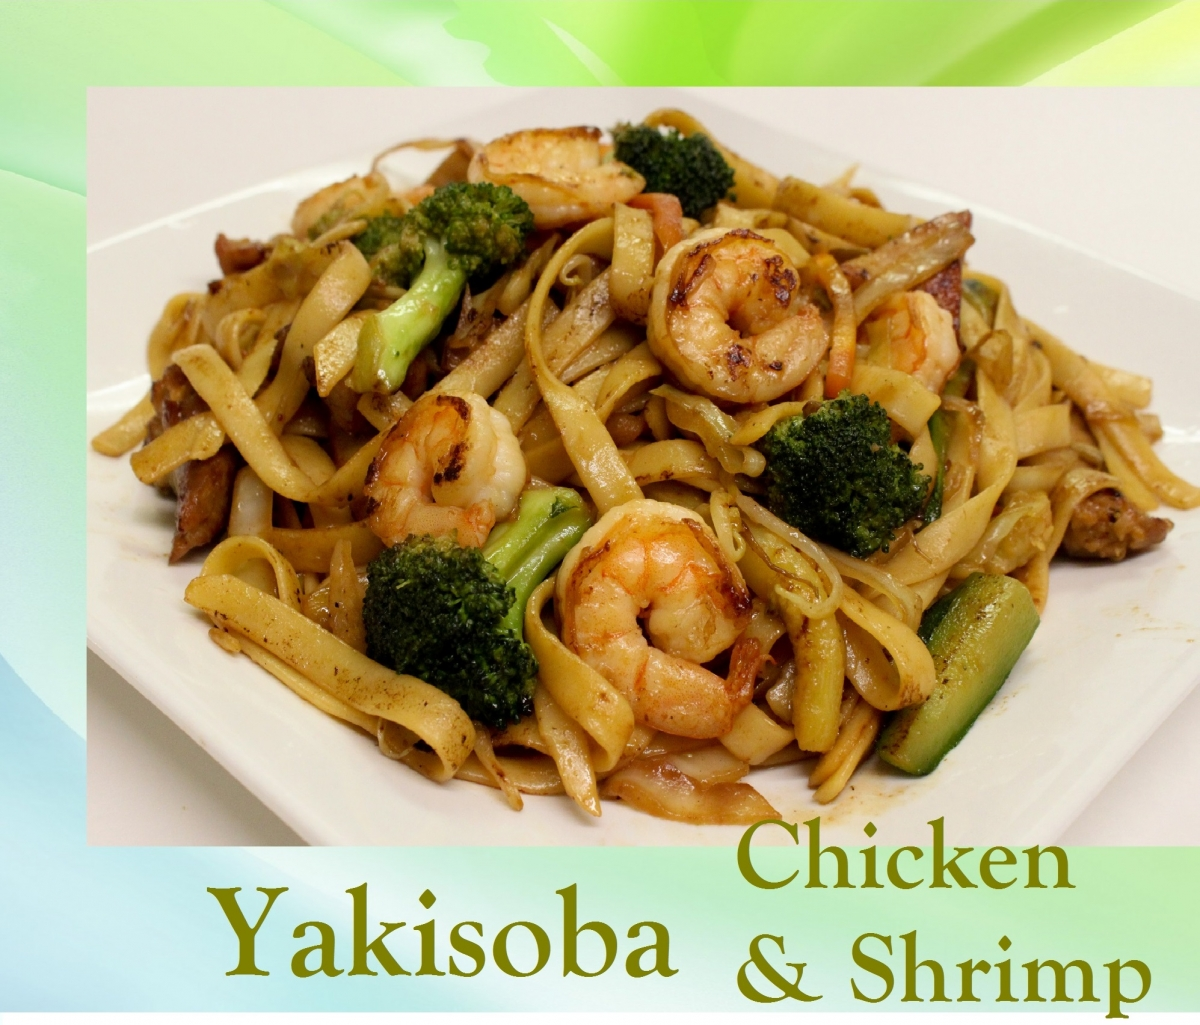 Yakisoba Chicken and Shrimp